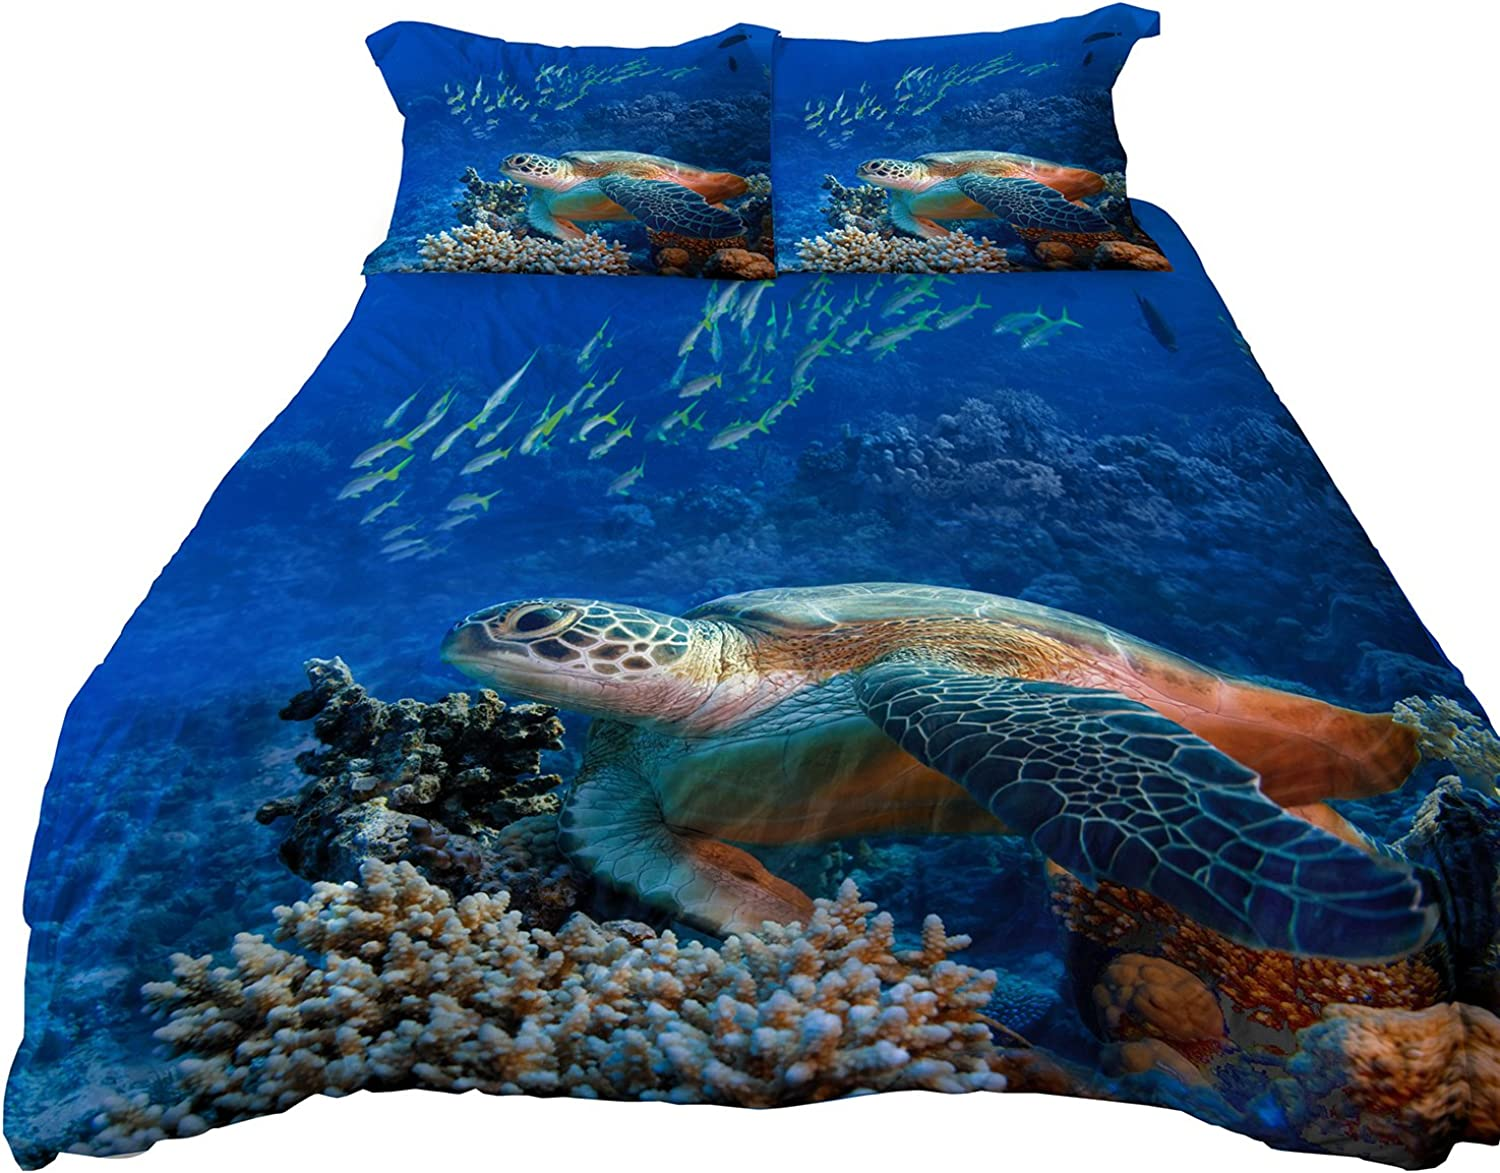 A Anoleu Microfiber Reversible Bedding Sets, Printed Sea Turtle Bedding Set, Reverse Dolphin Bedding, 3-PC Queen Size Duvet Cover Set (Queen)